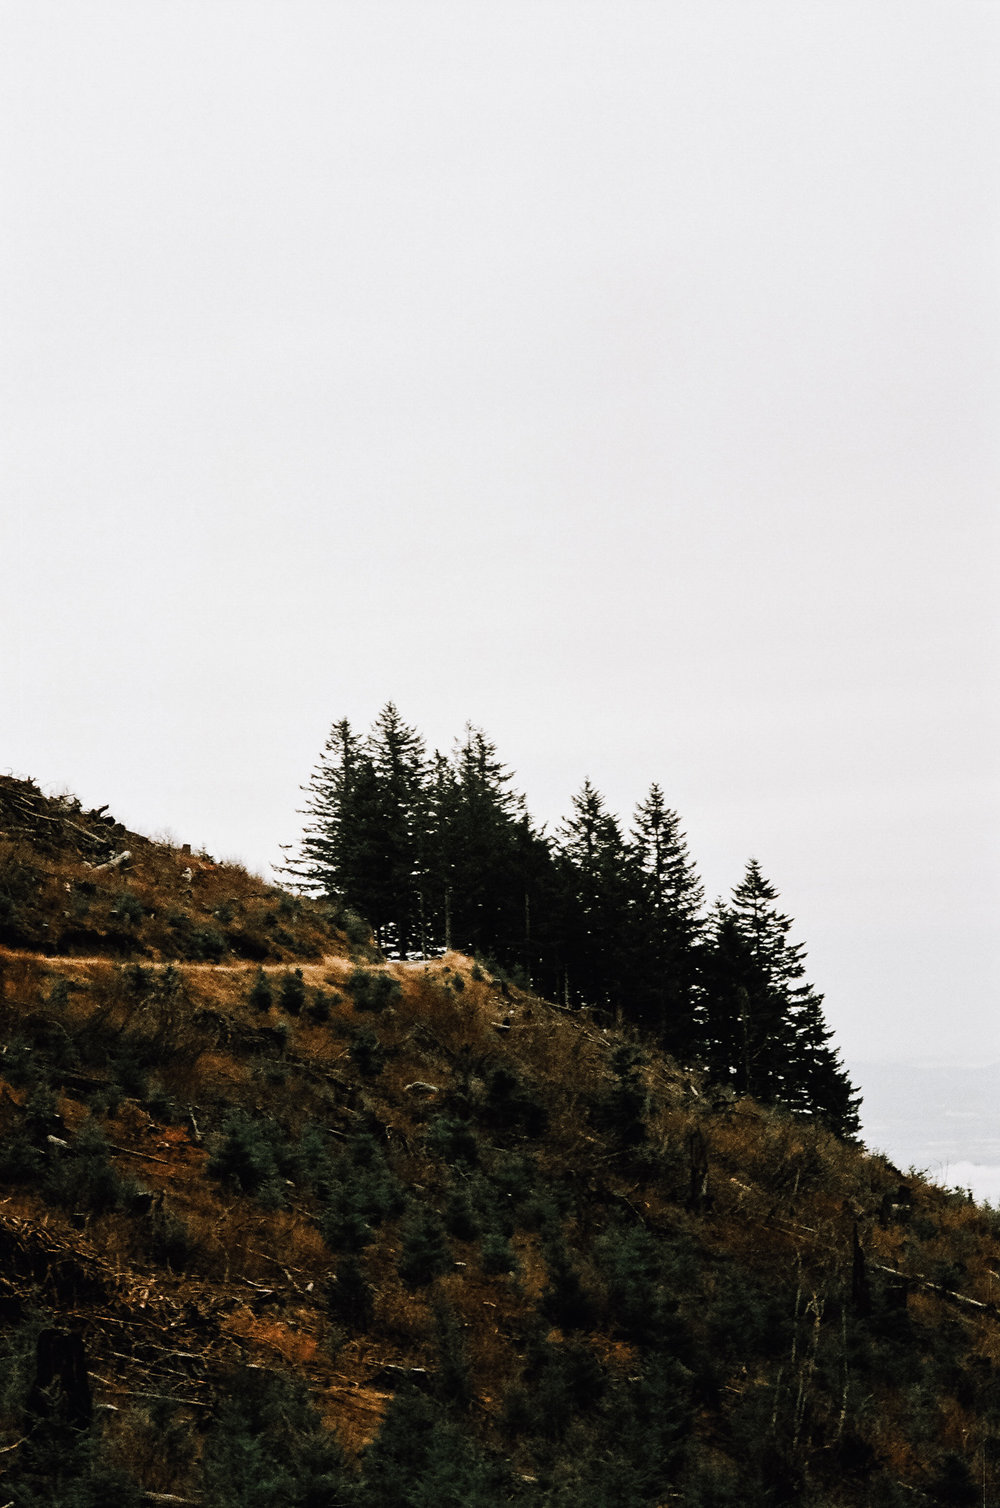 Livingston Mountain Camas Washington KyleWillisPhoto Agfa Vista 400 35mm Film Nikkormat FT2